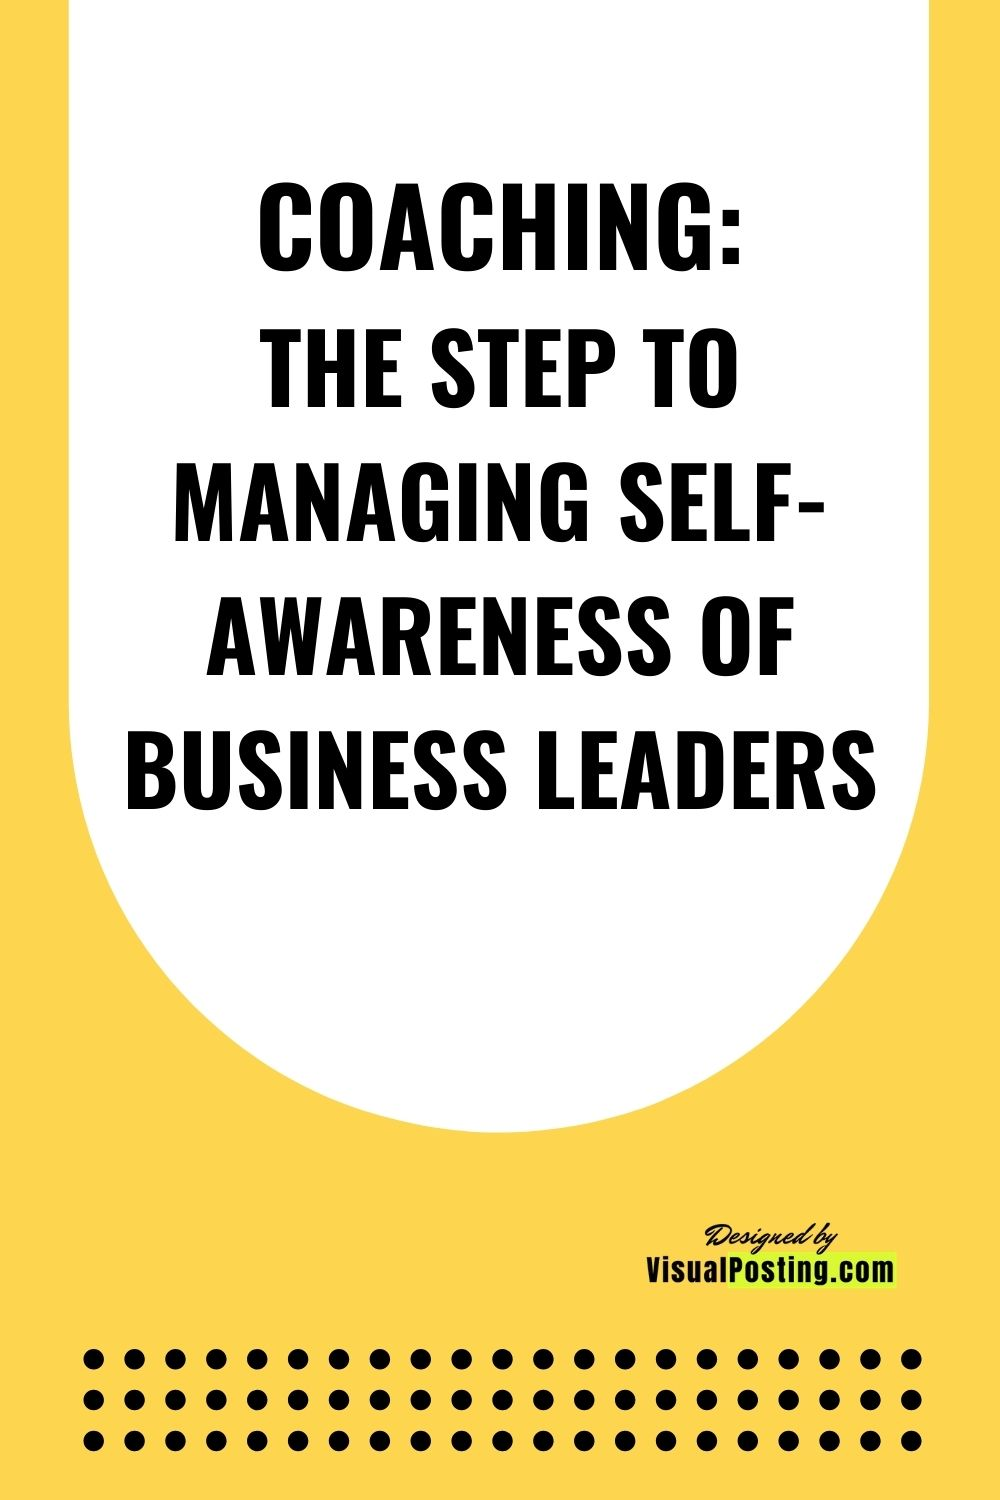 THE STEP TO MANAGING SELF-AWARENESS OF BUSINESS LEADERS.jpg